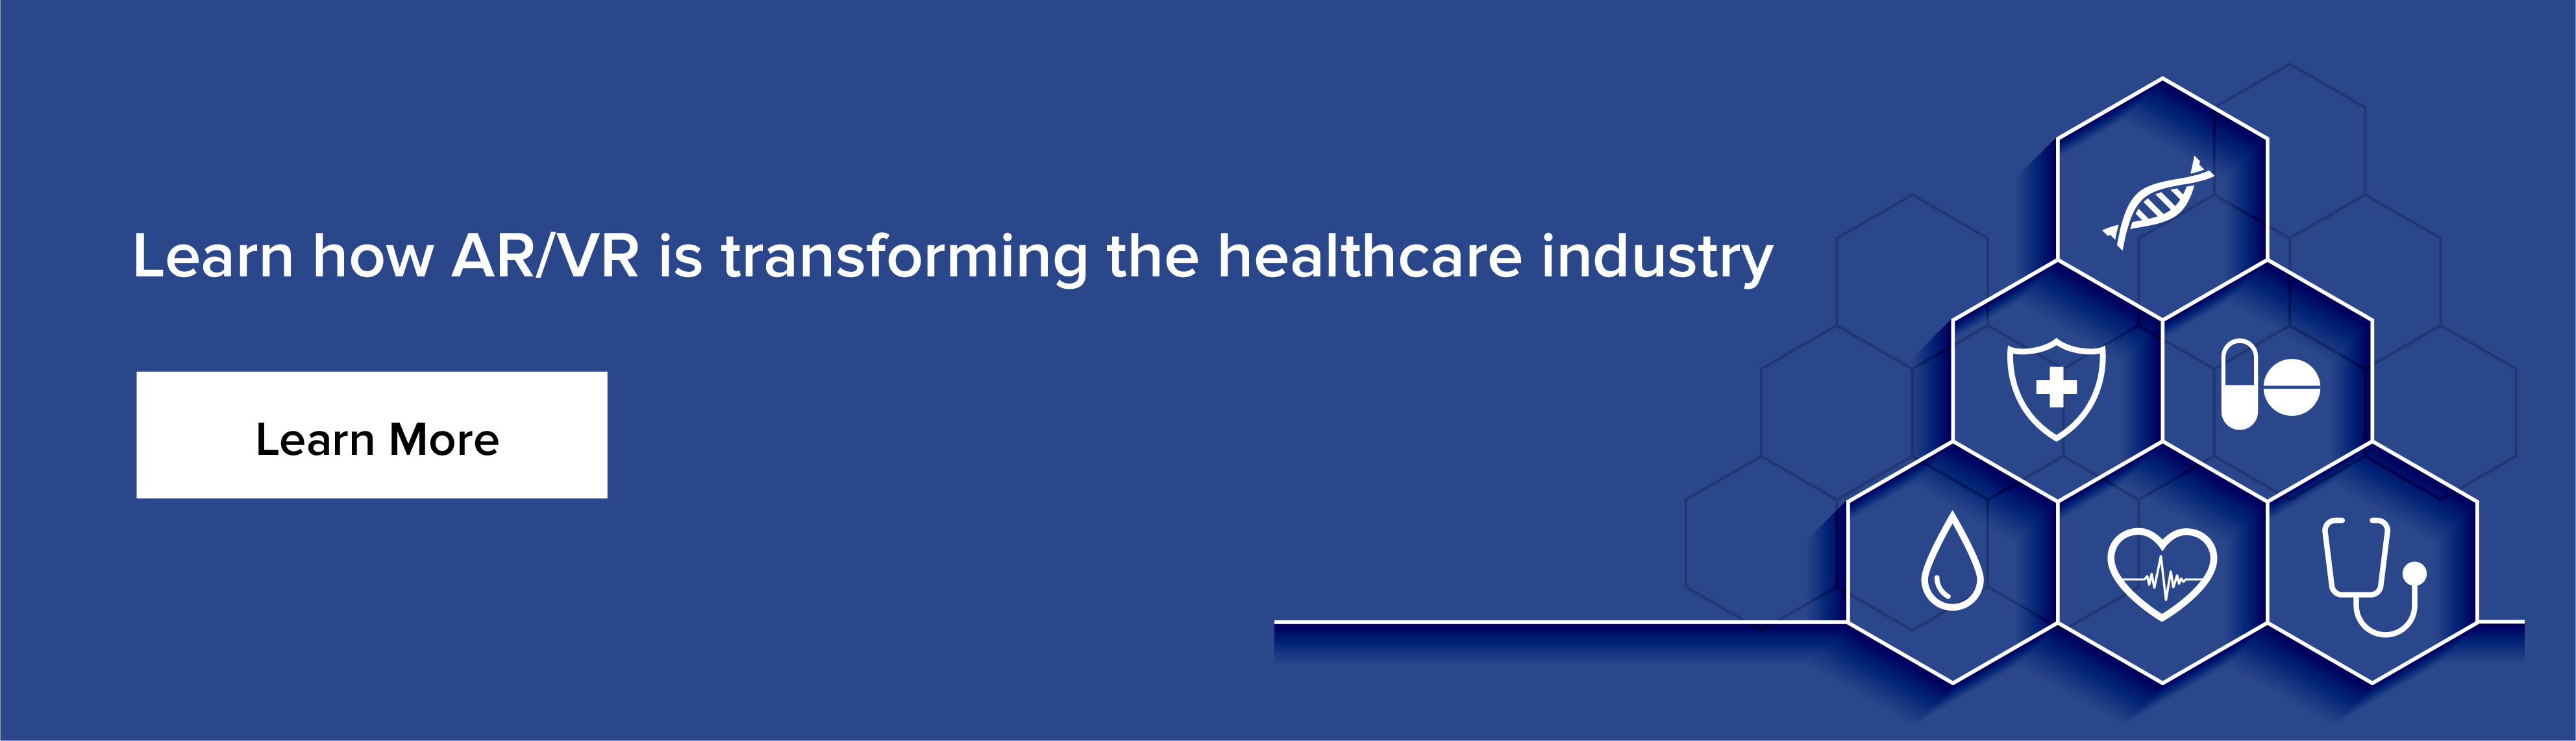 Ar Vr in healthcare industry